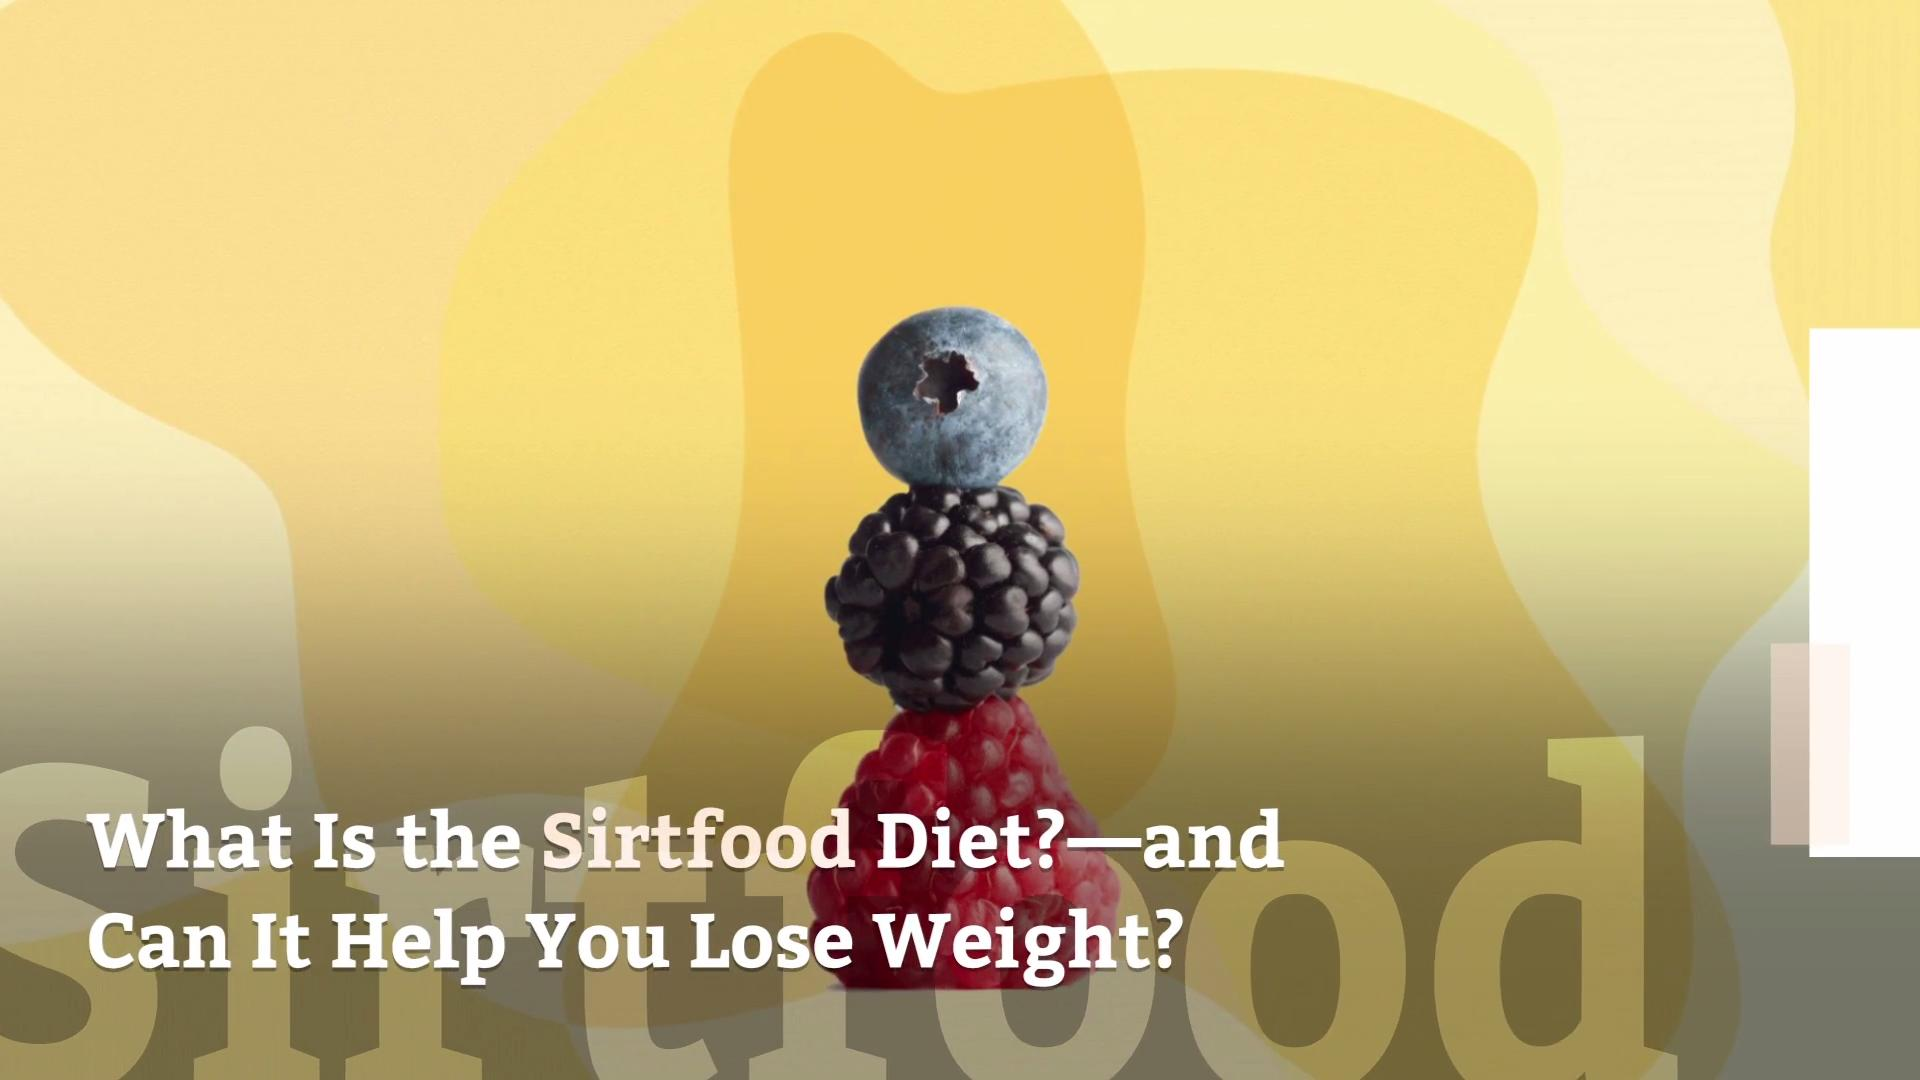 What Is the Sirtfood Diet?—and Can It Help You Lose Weight?